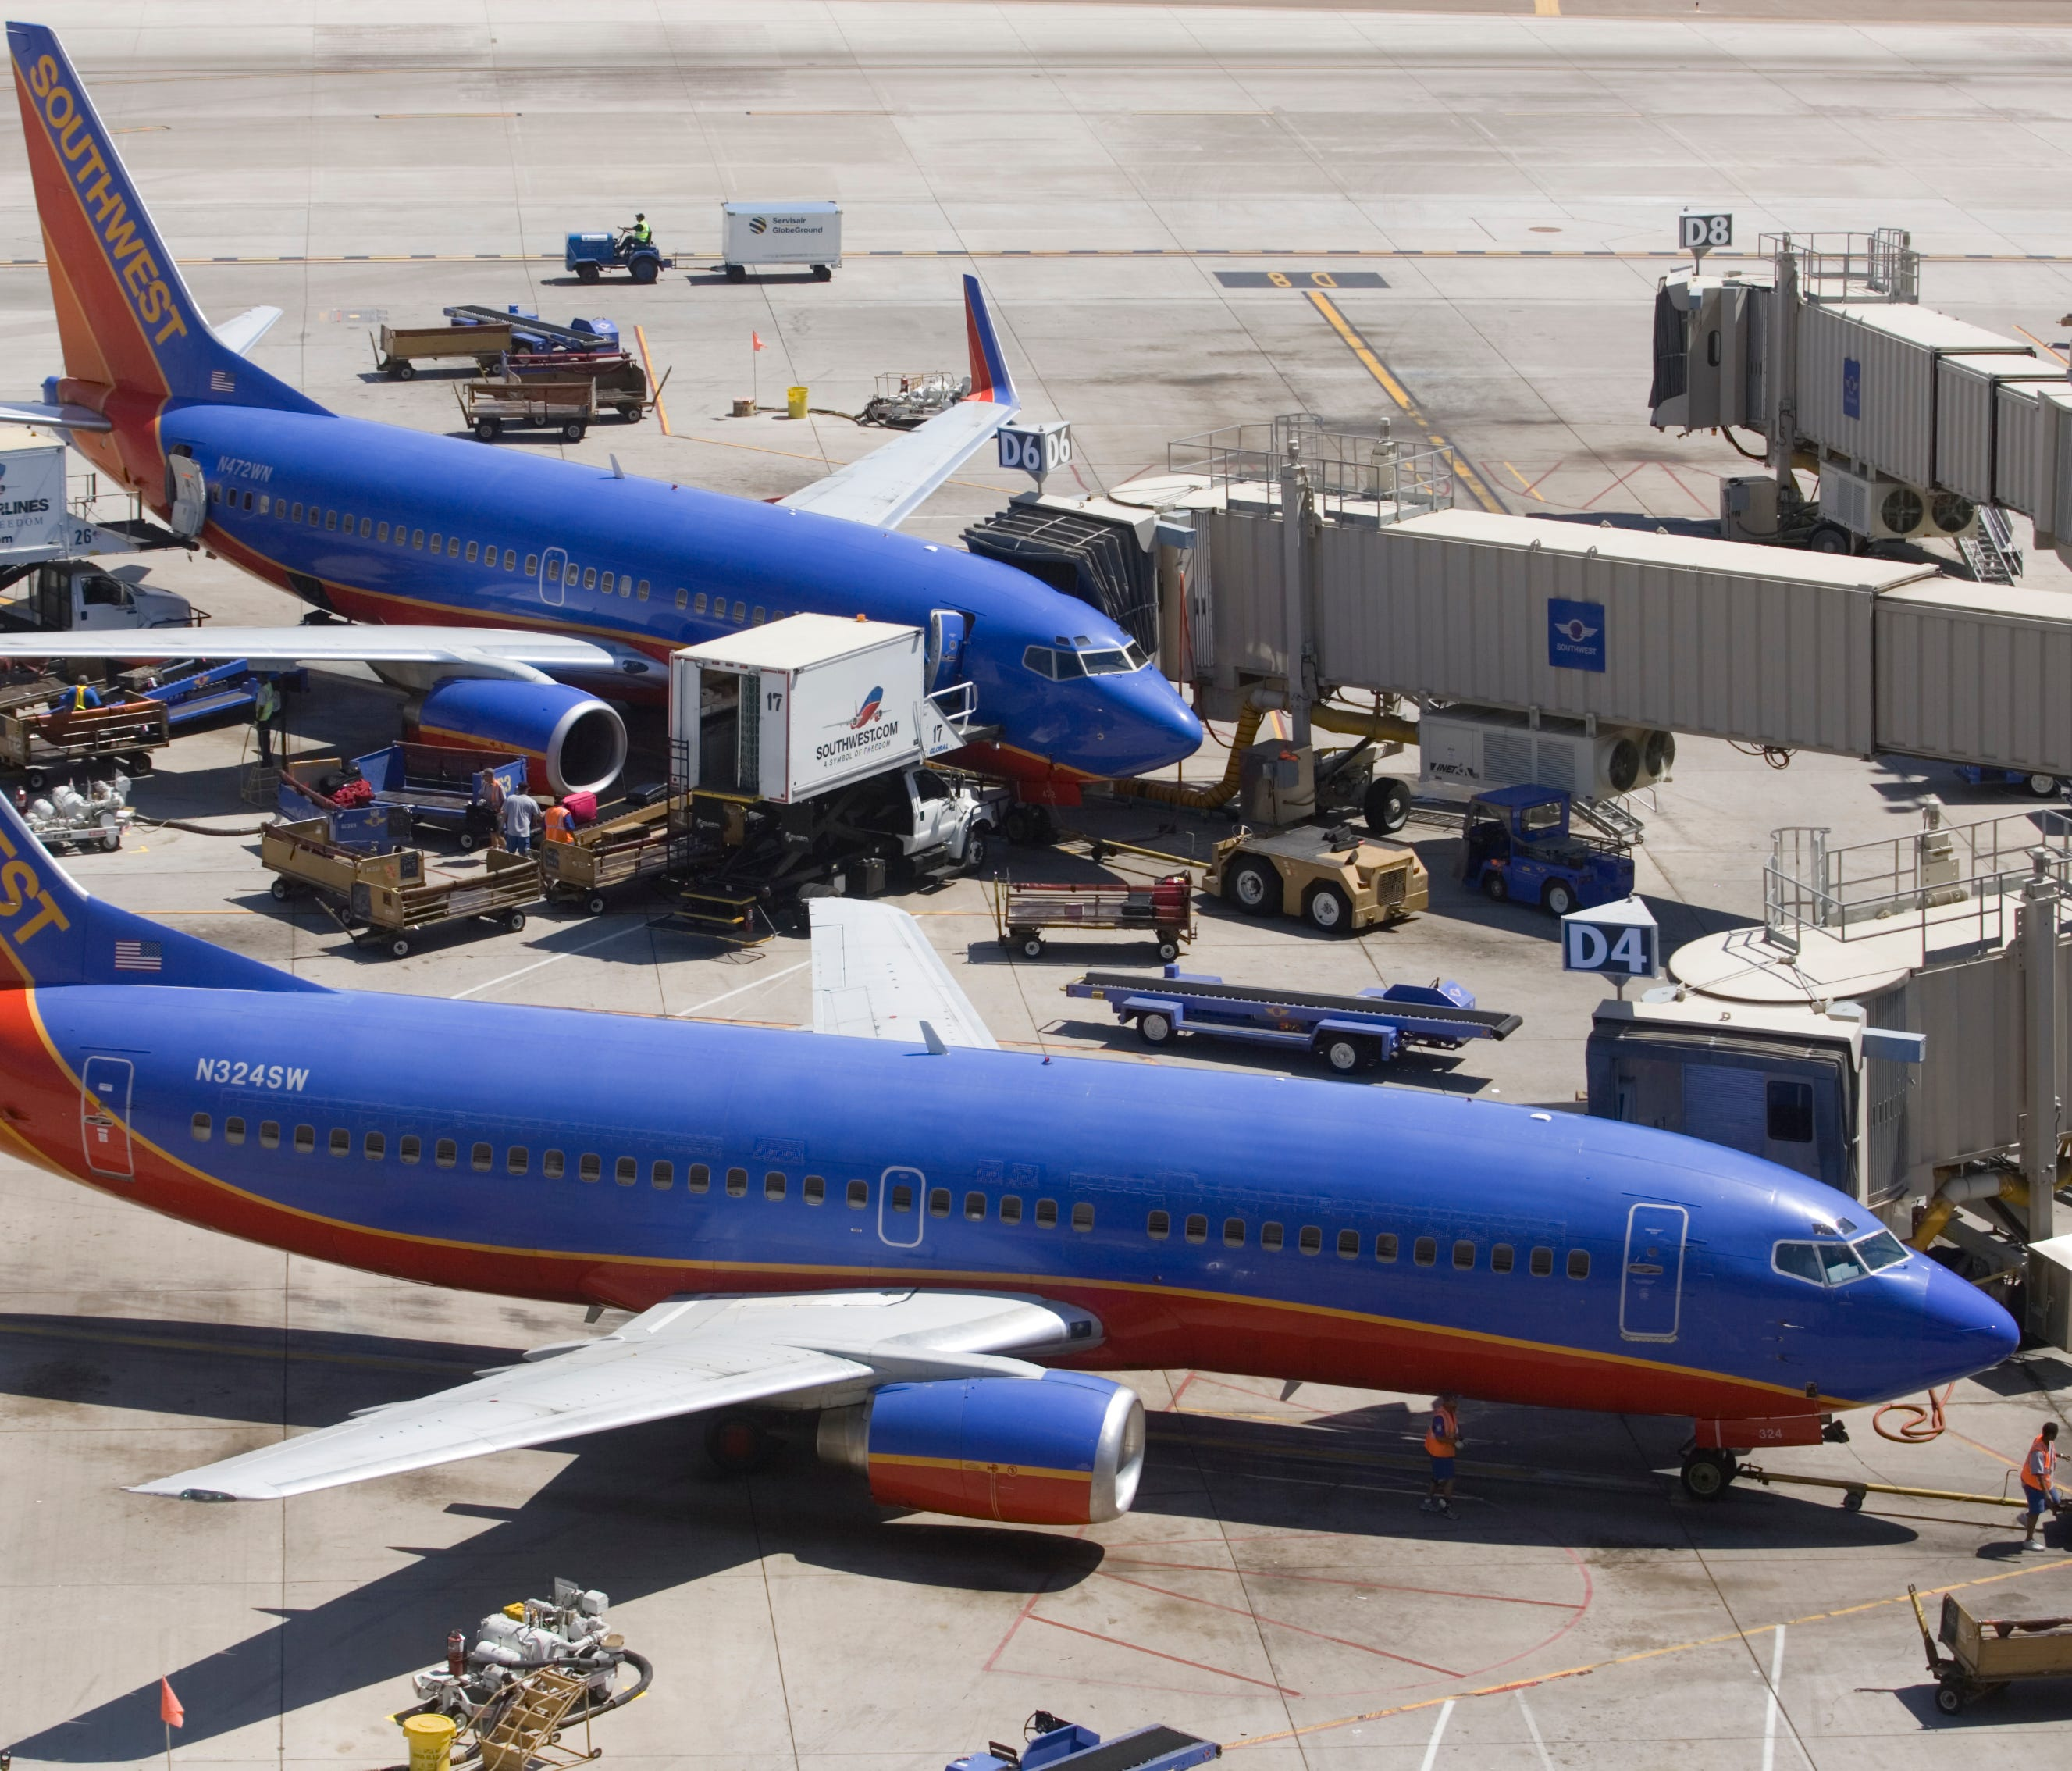 Southwest Airline planes are seen on the runway at Sky Harbor Airport in Phoenix on Tuesday, July 17, 2007.